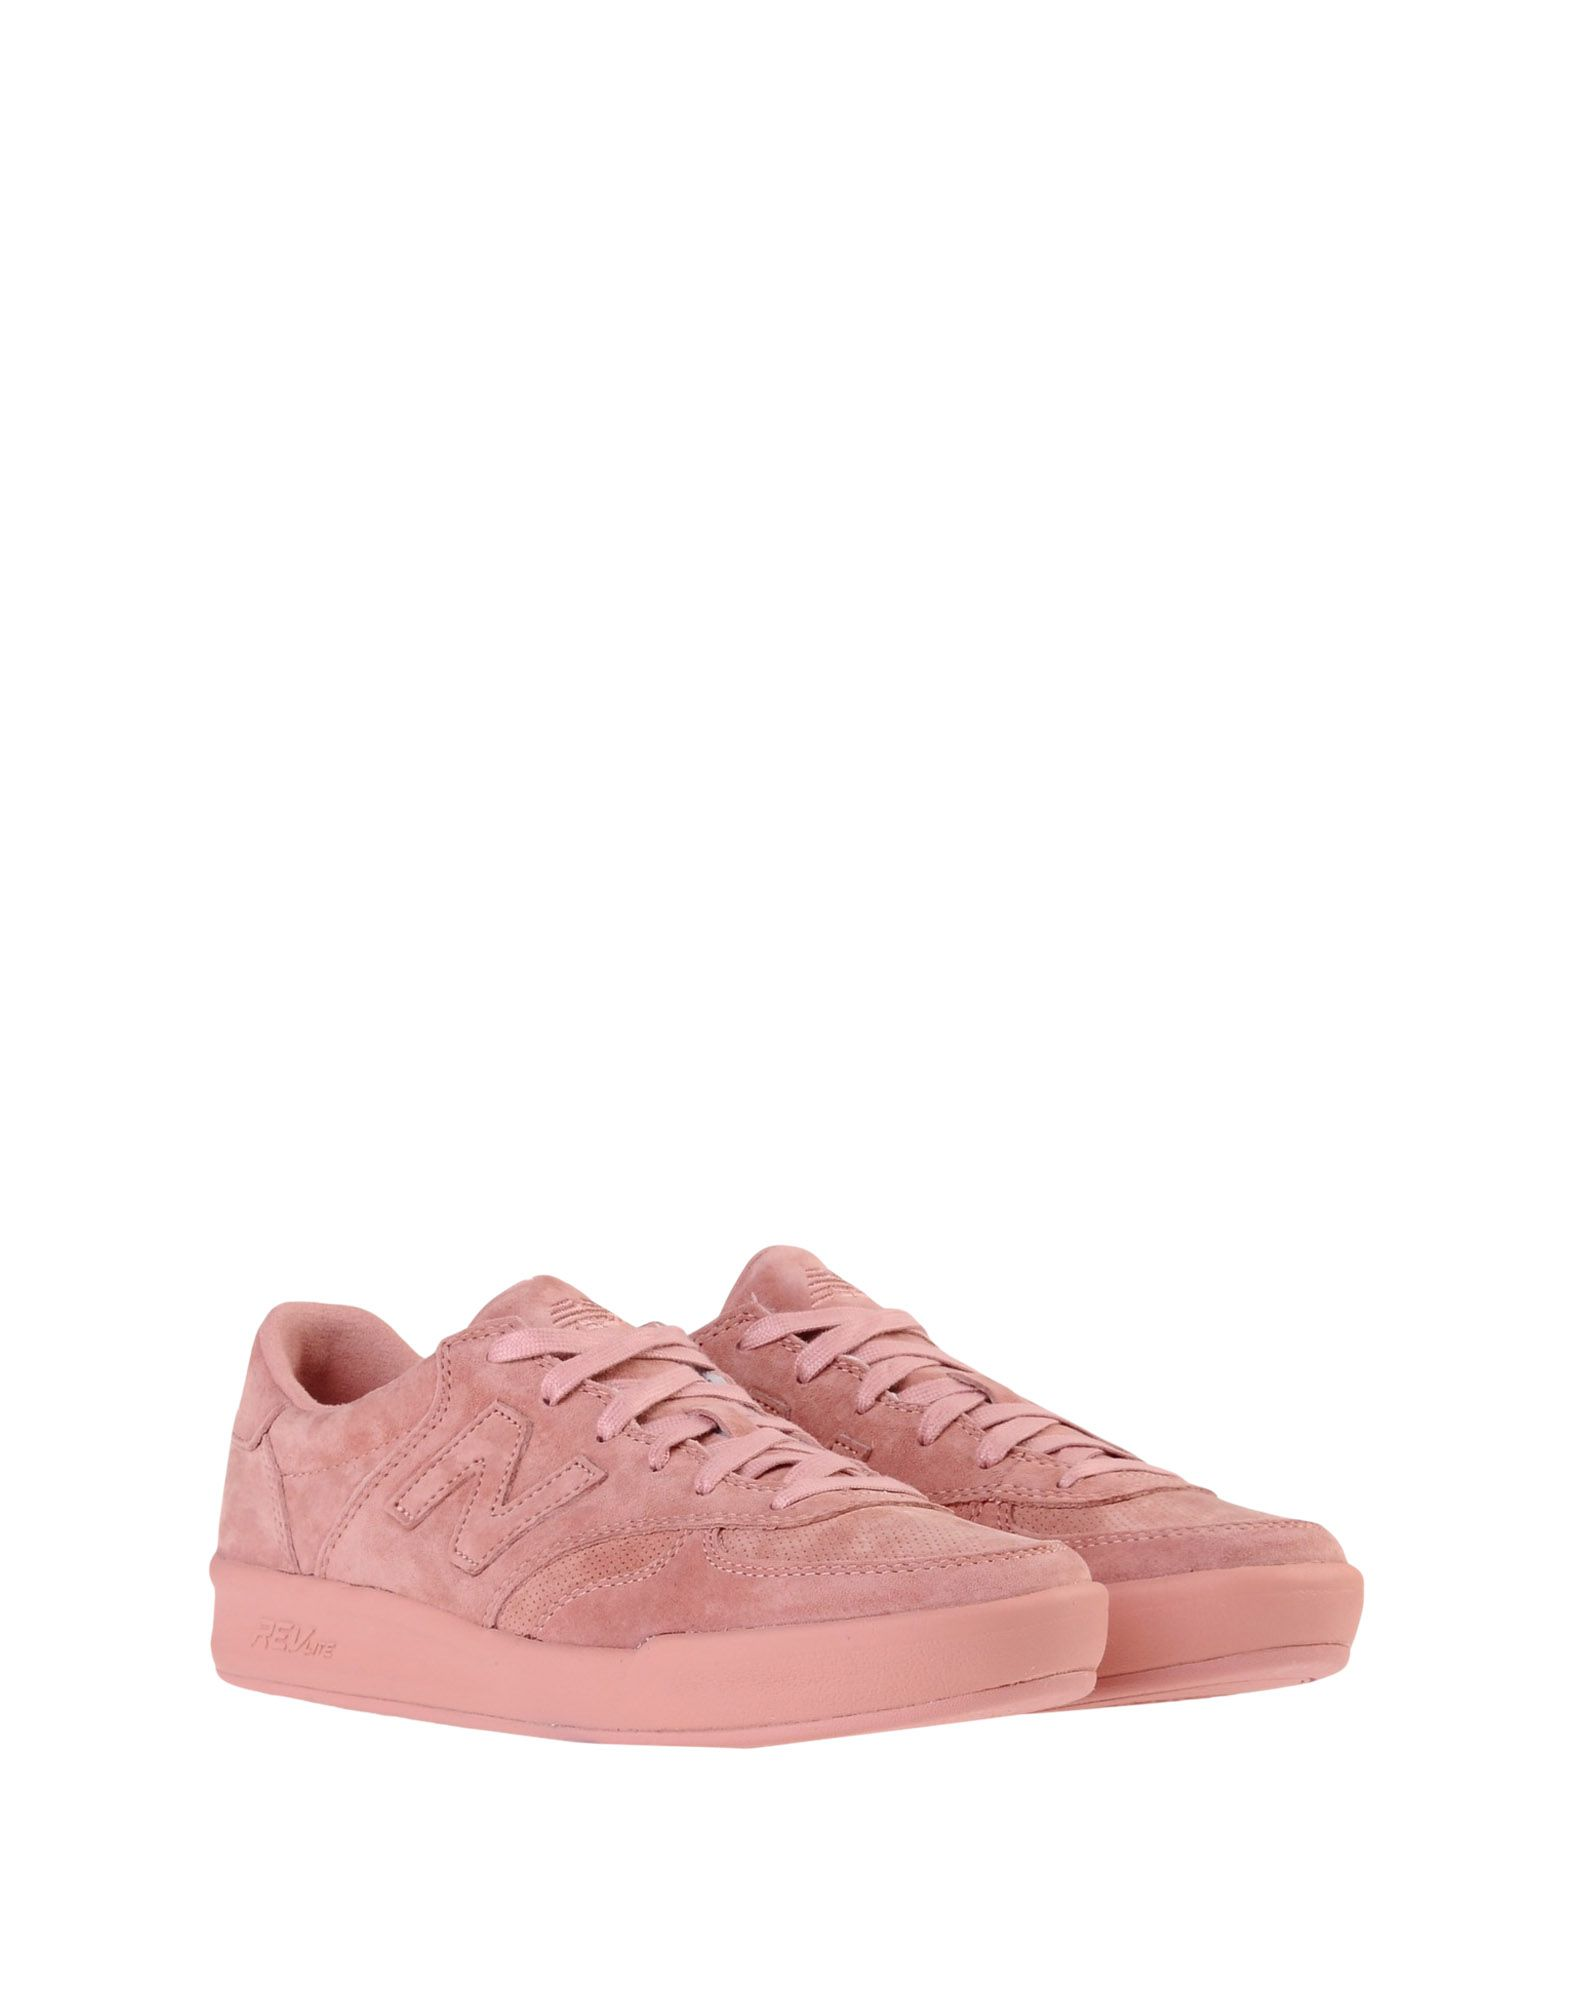 Sneakers New Balance 300 Pigskin - Femme - Sneakers New Balance sur